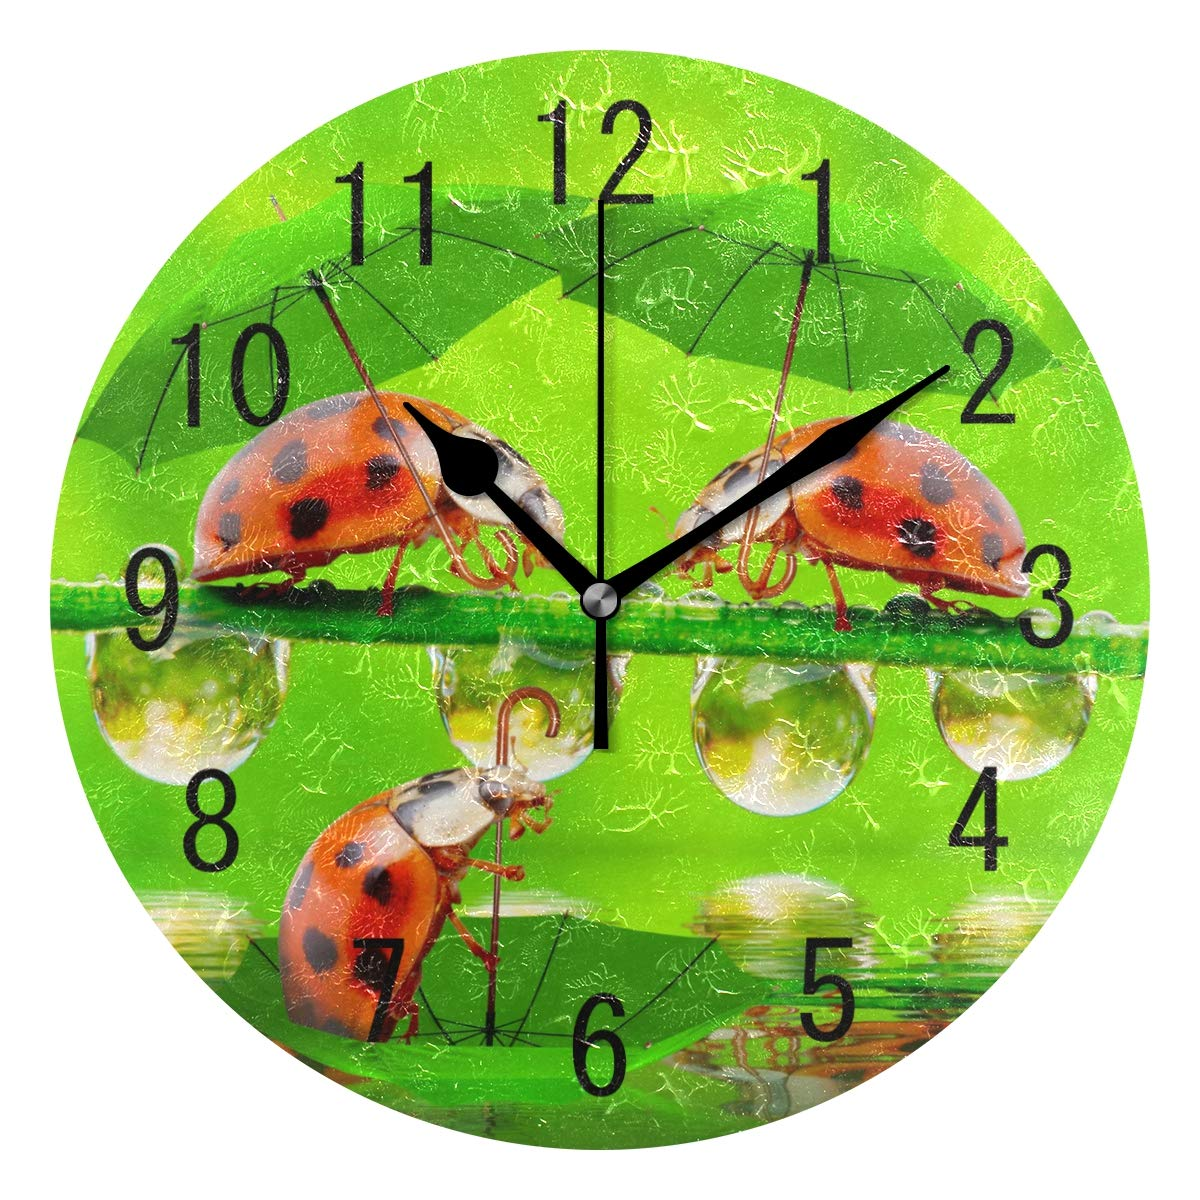 Amazon.com: ALAZA Home Decor Cute Ladybug Landscape Nature Round Acrylic Wall Clock Non Ticking Silent Clock Art for Living Room Kitchen Bedroom: Home & ...